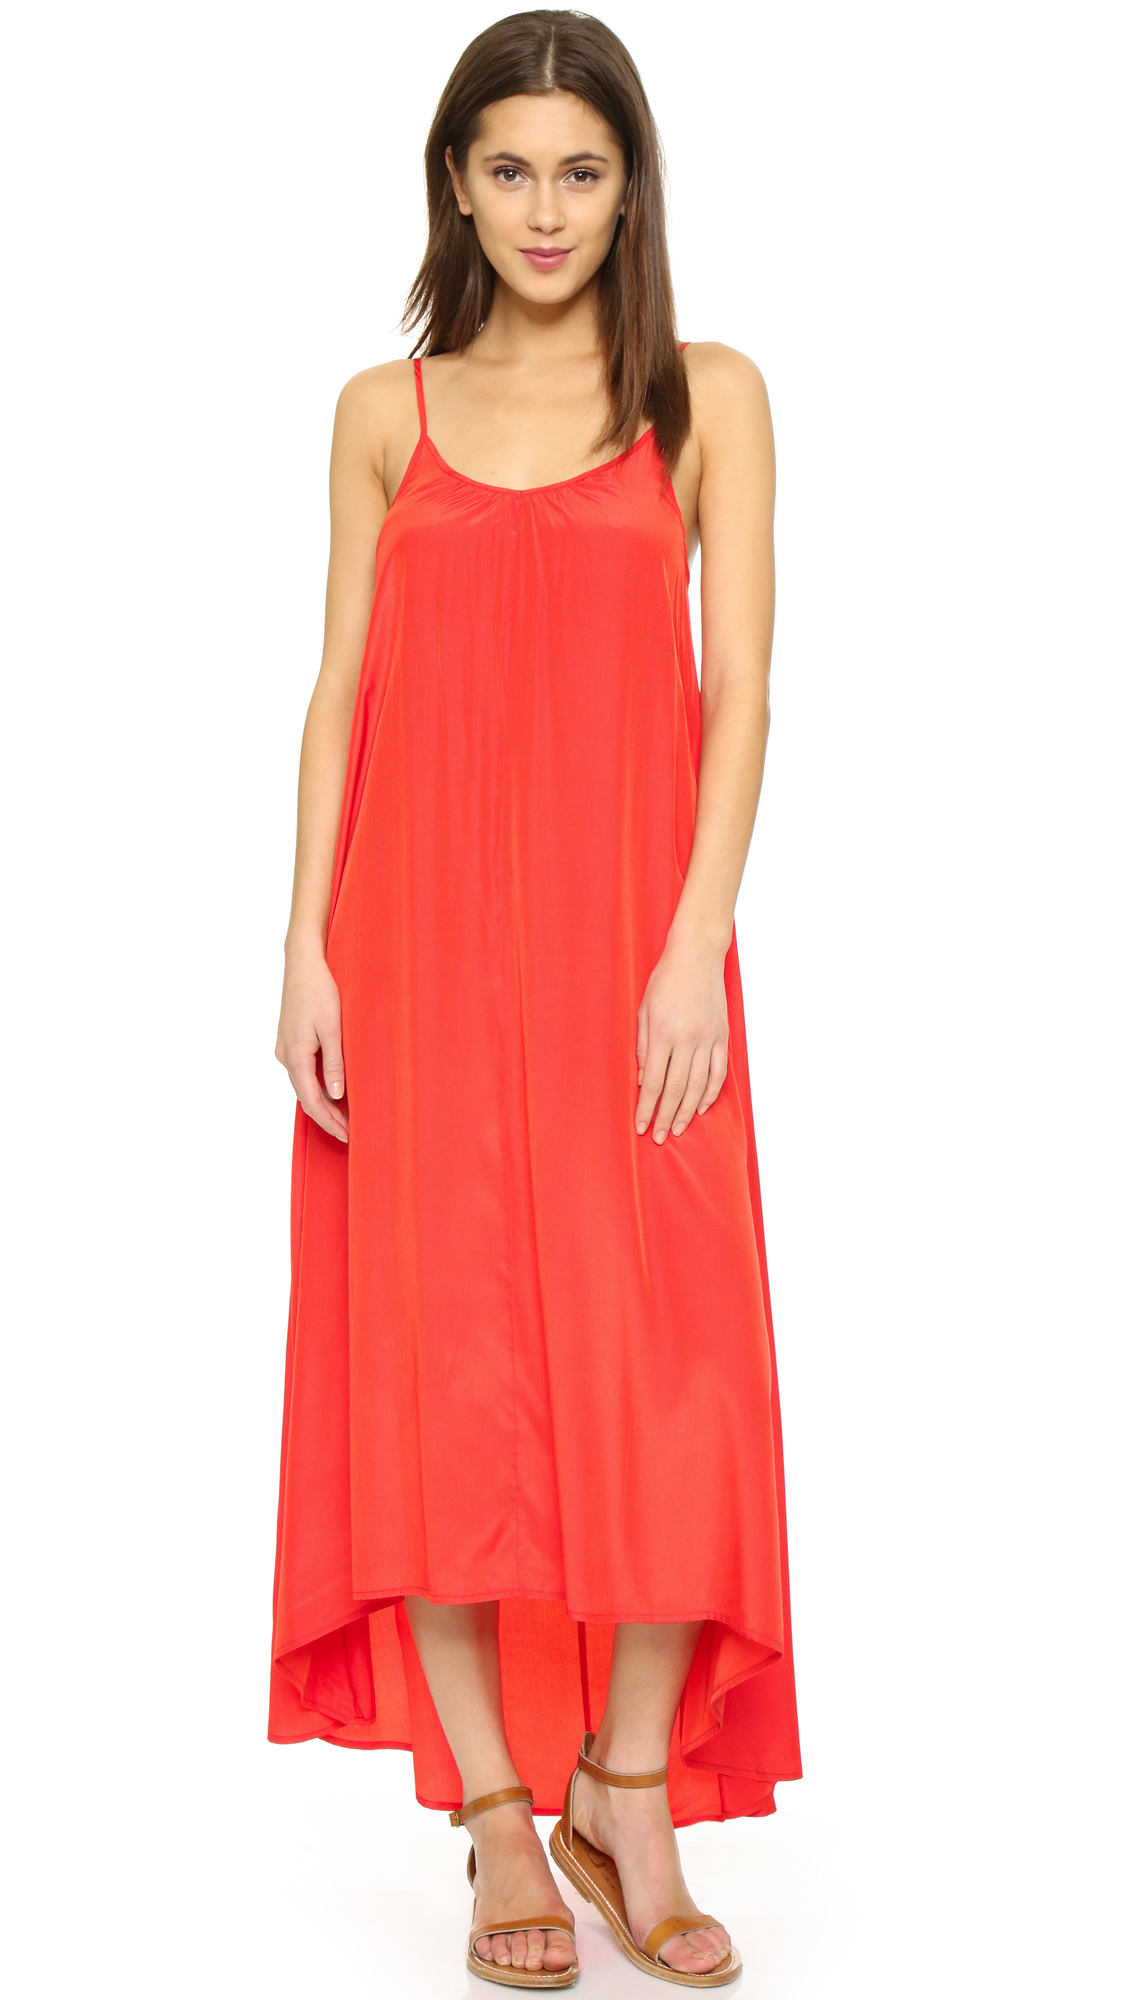 ONE by Resort Maxi Dress - Red